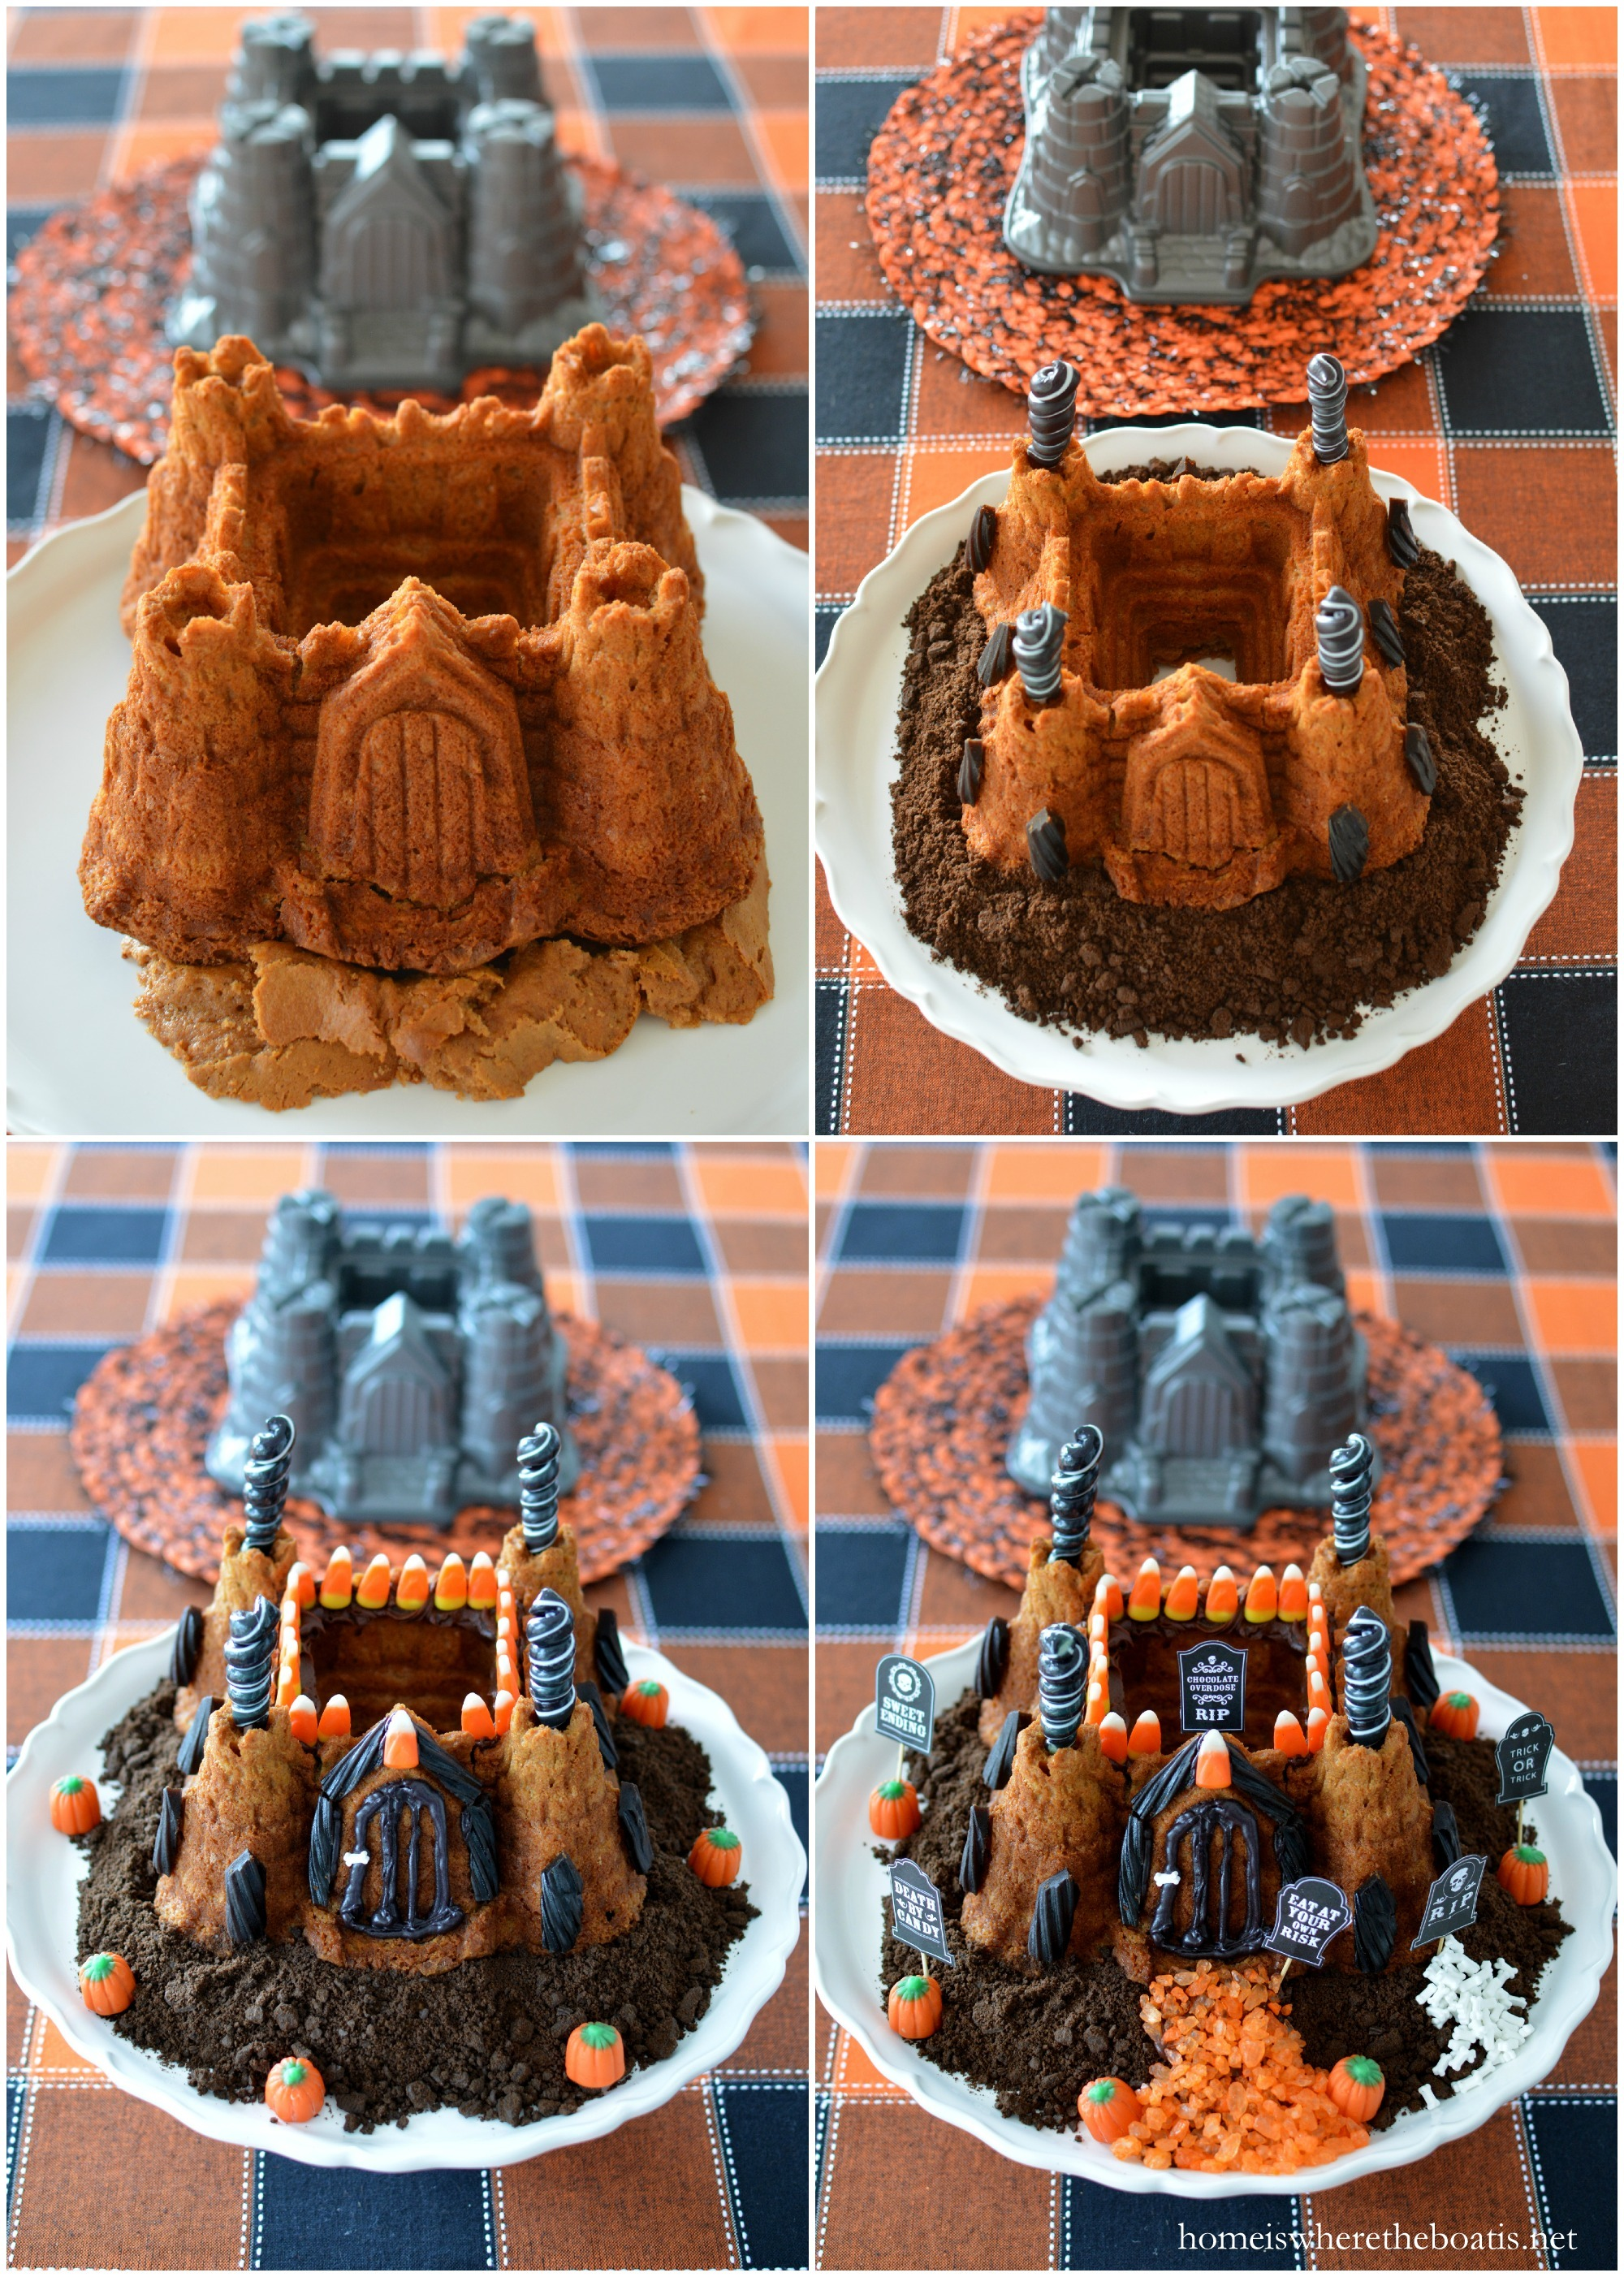 Castle Bundt Cake Decorating